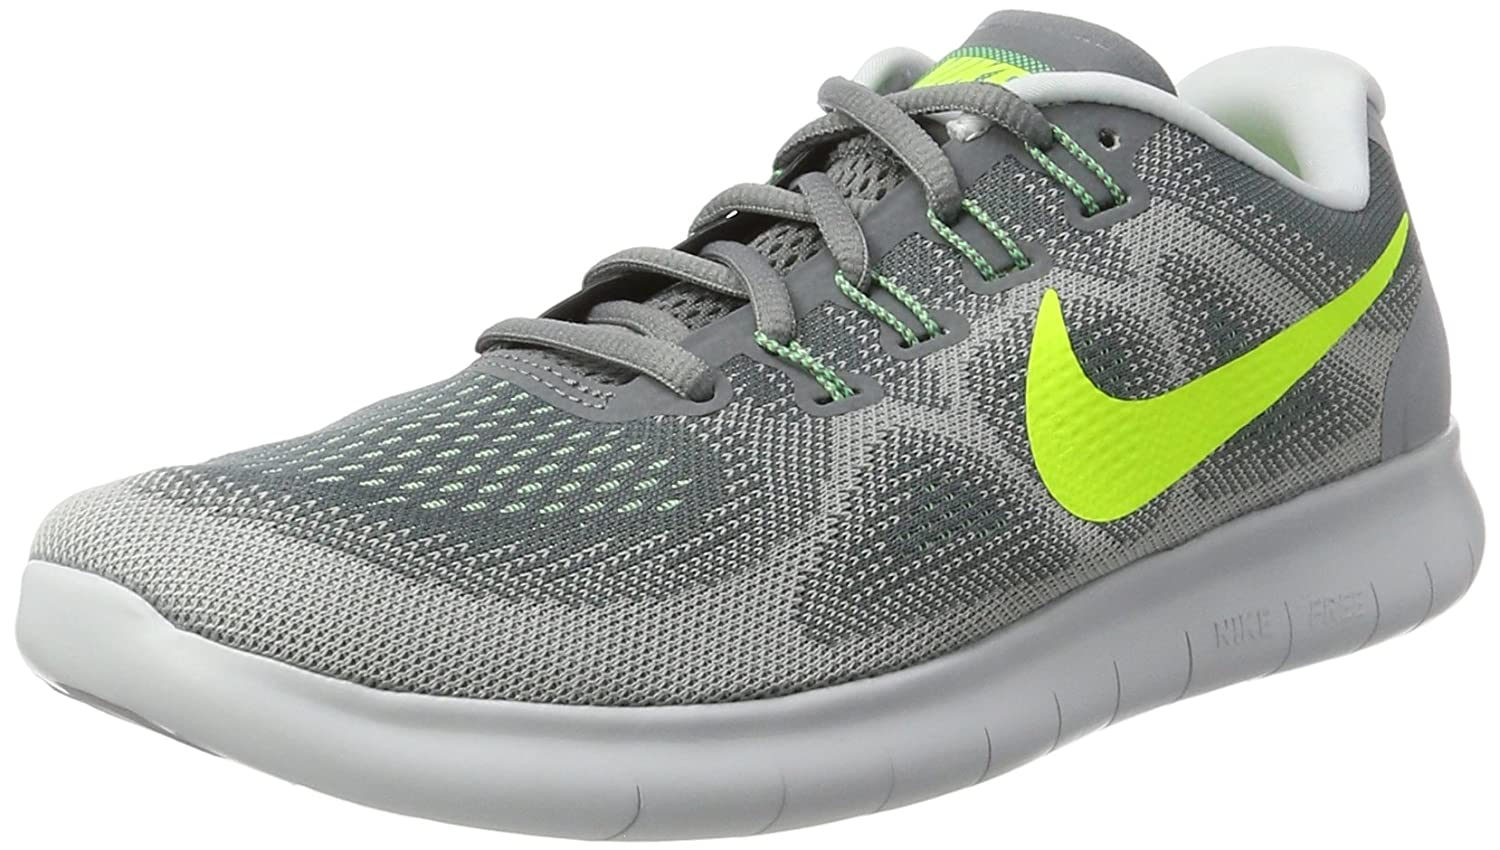 Nike - Free RN 2 Black/Hot Punch - Sneakers Hombre 42 EU Gris (Cool Grey/Volt/Wolf Grey/Ghost Green)